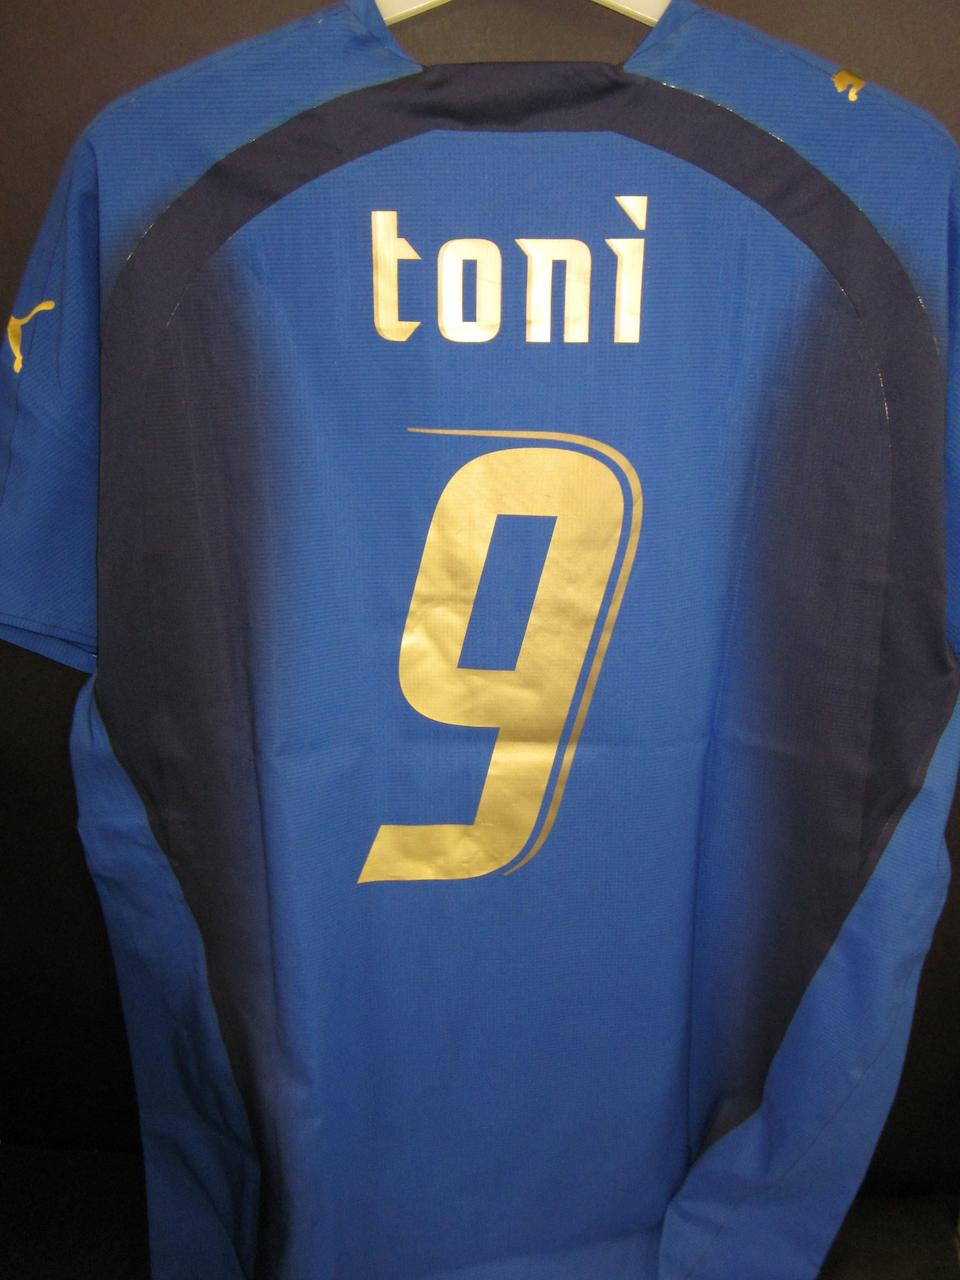 2006 Luca Toni match issued Italy shirt